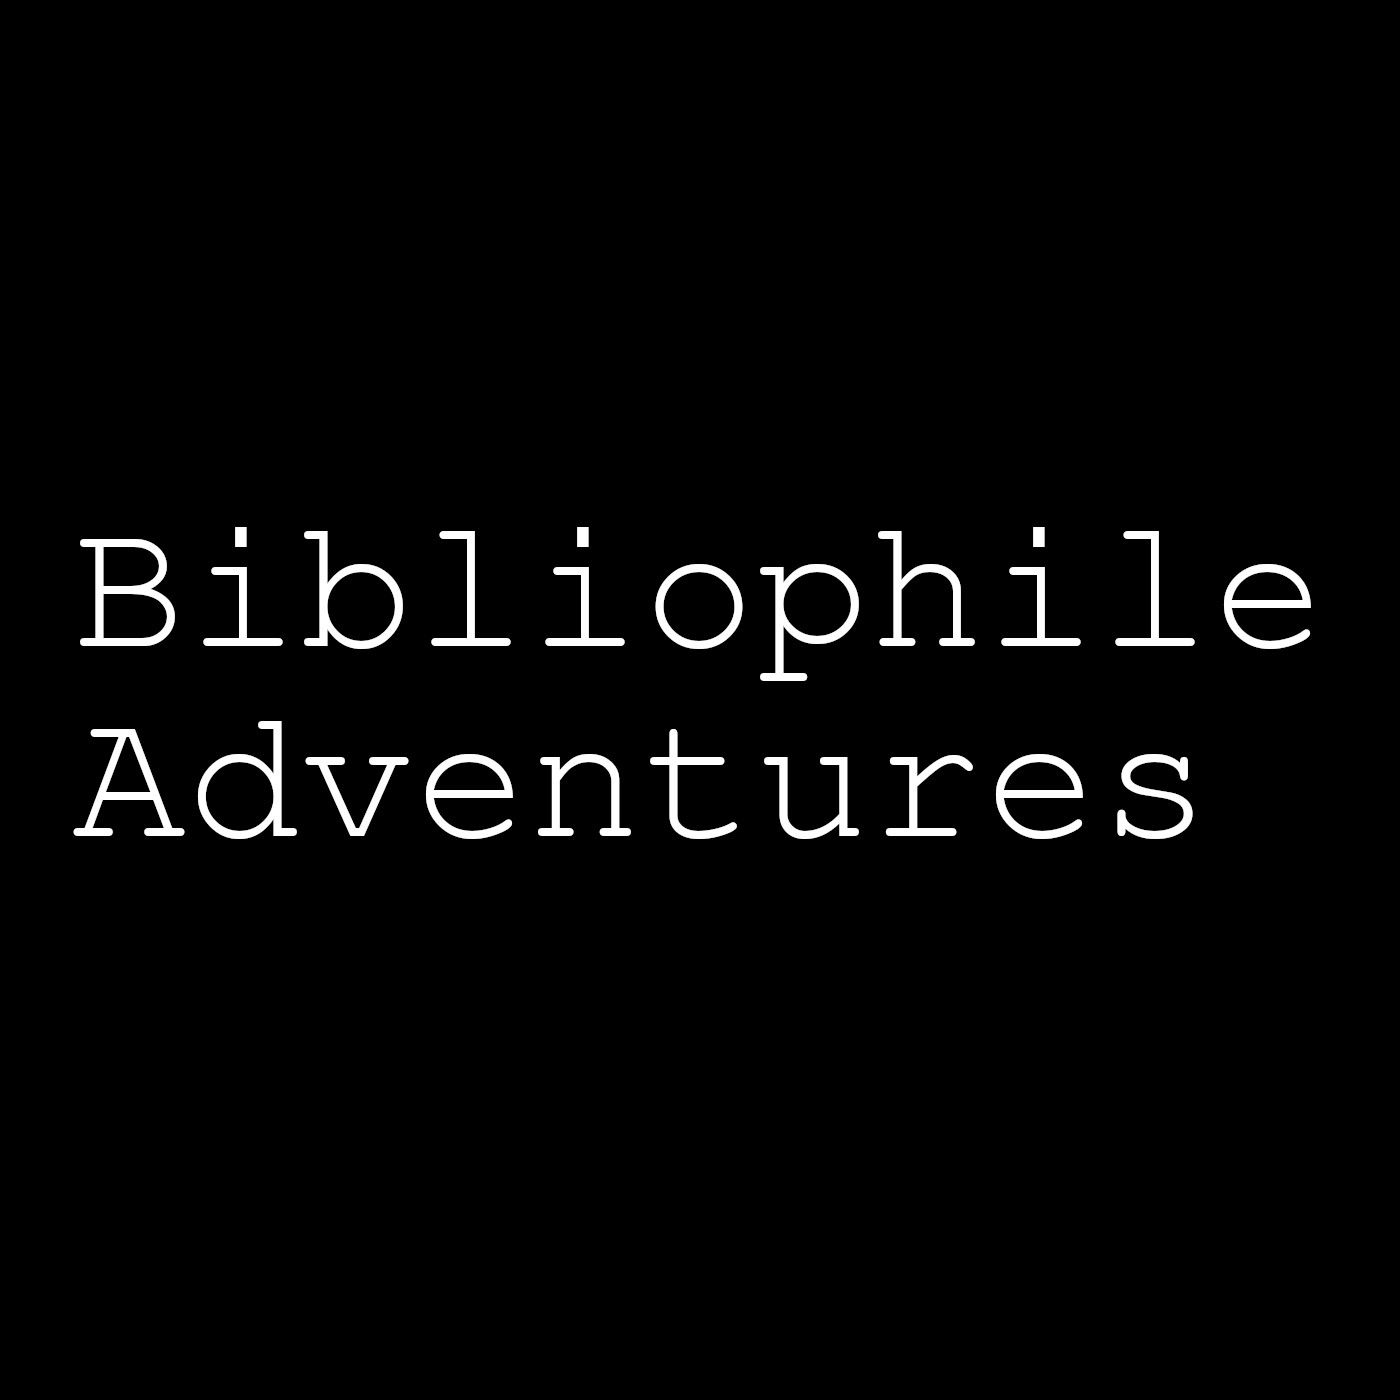 Bibliophile Labyrinth Adventures